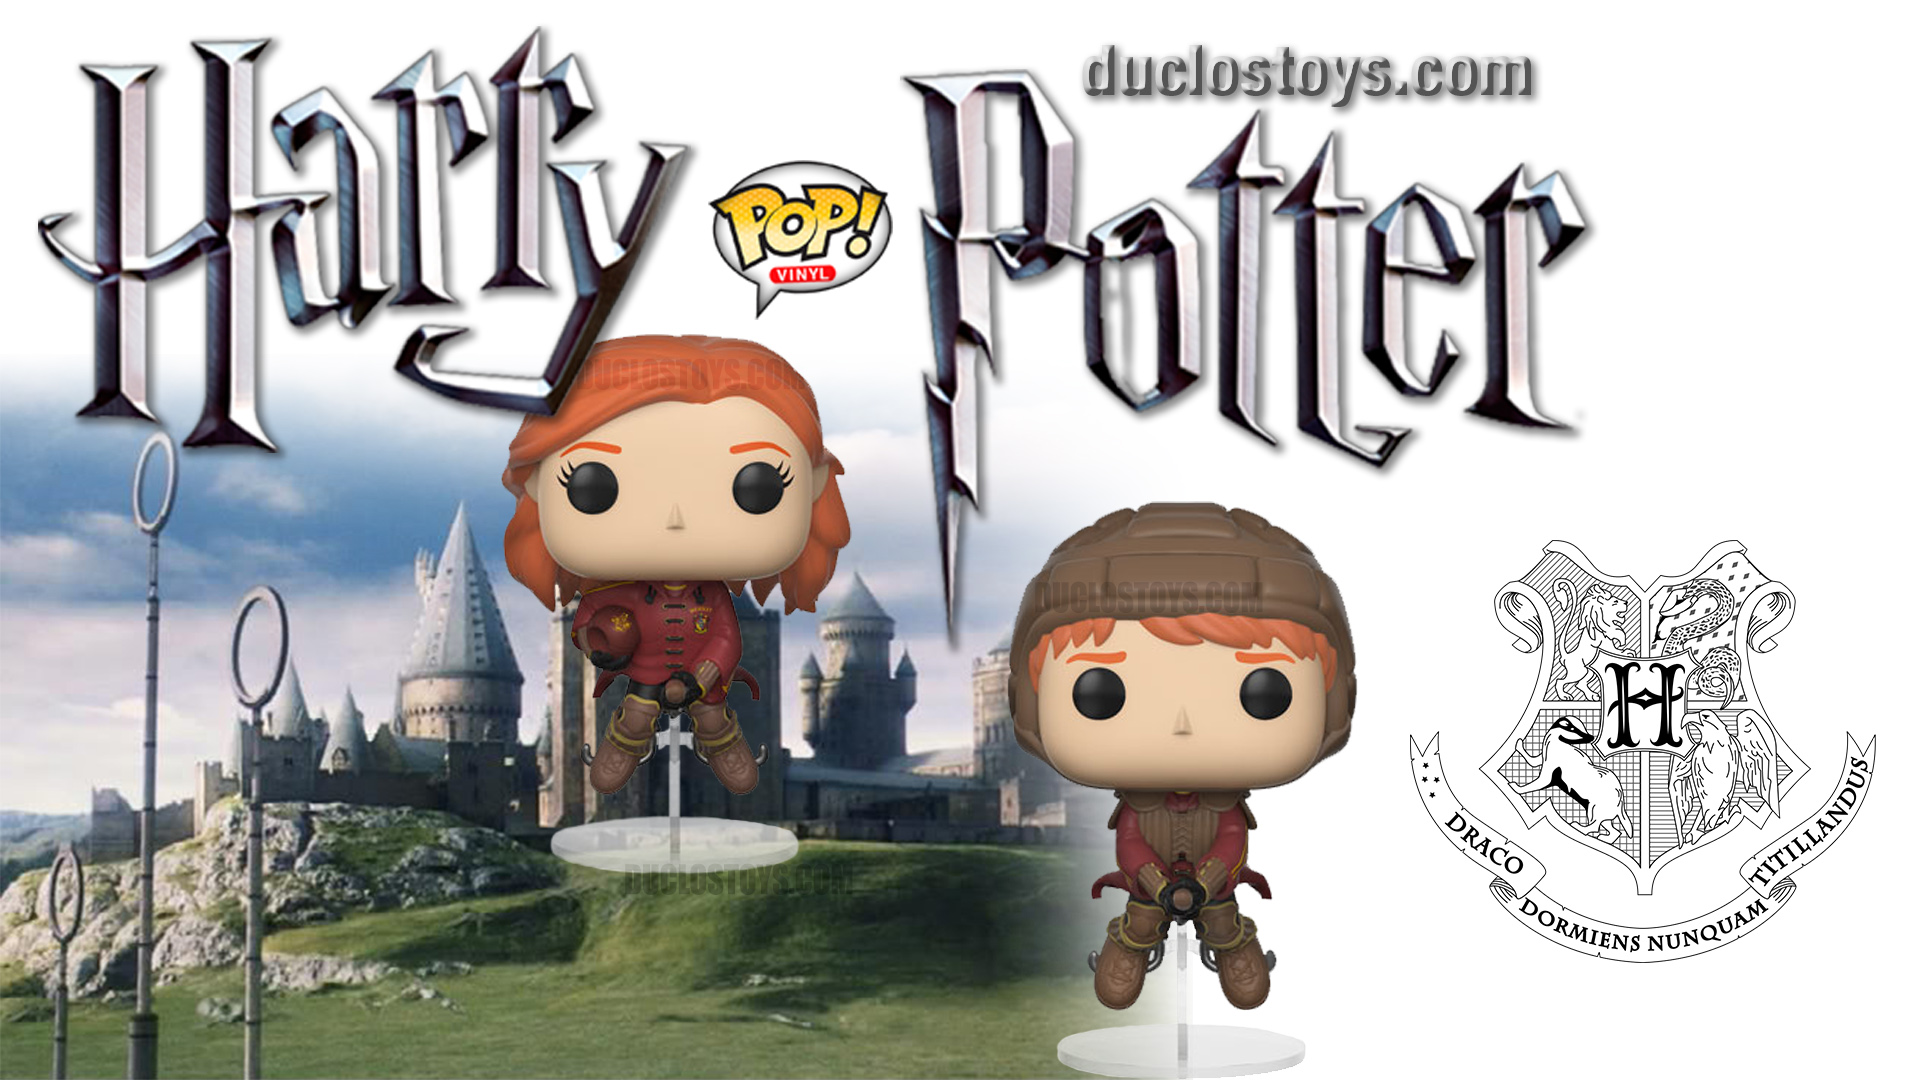 Duclos_Toys_Funko_Pop_Harry_Potter